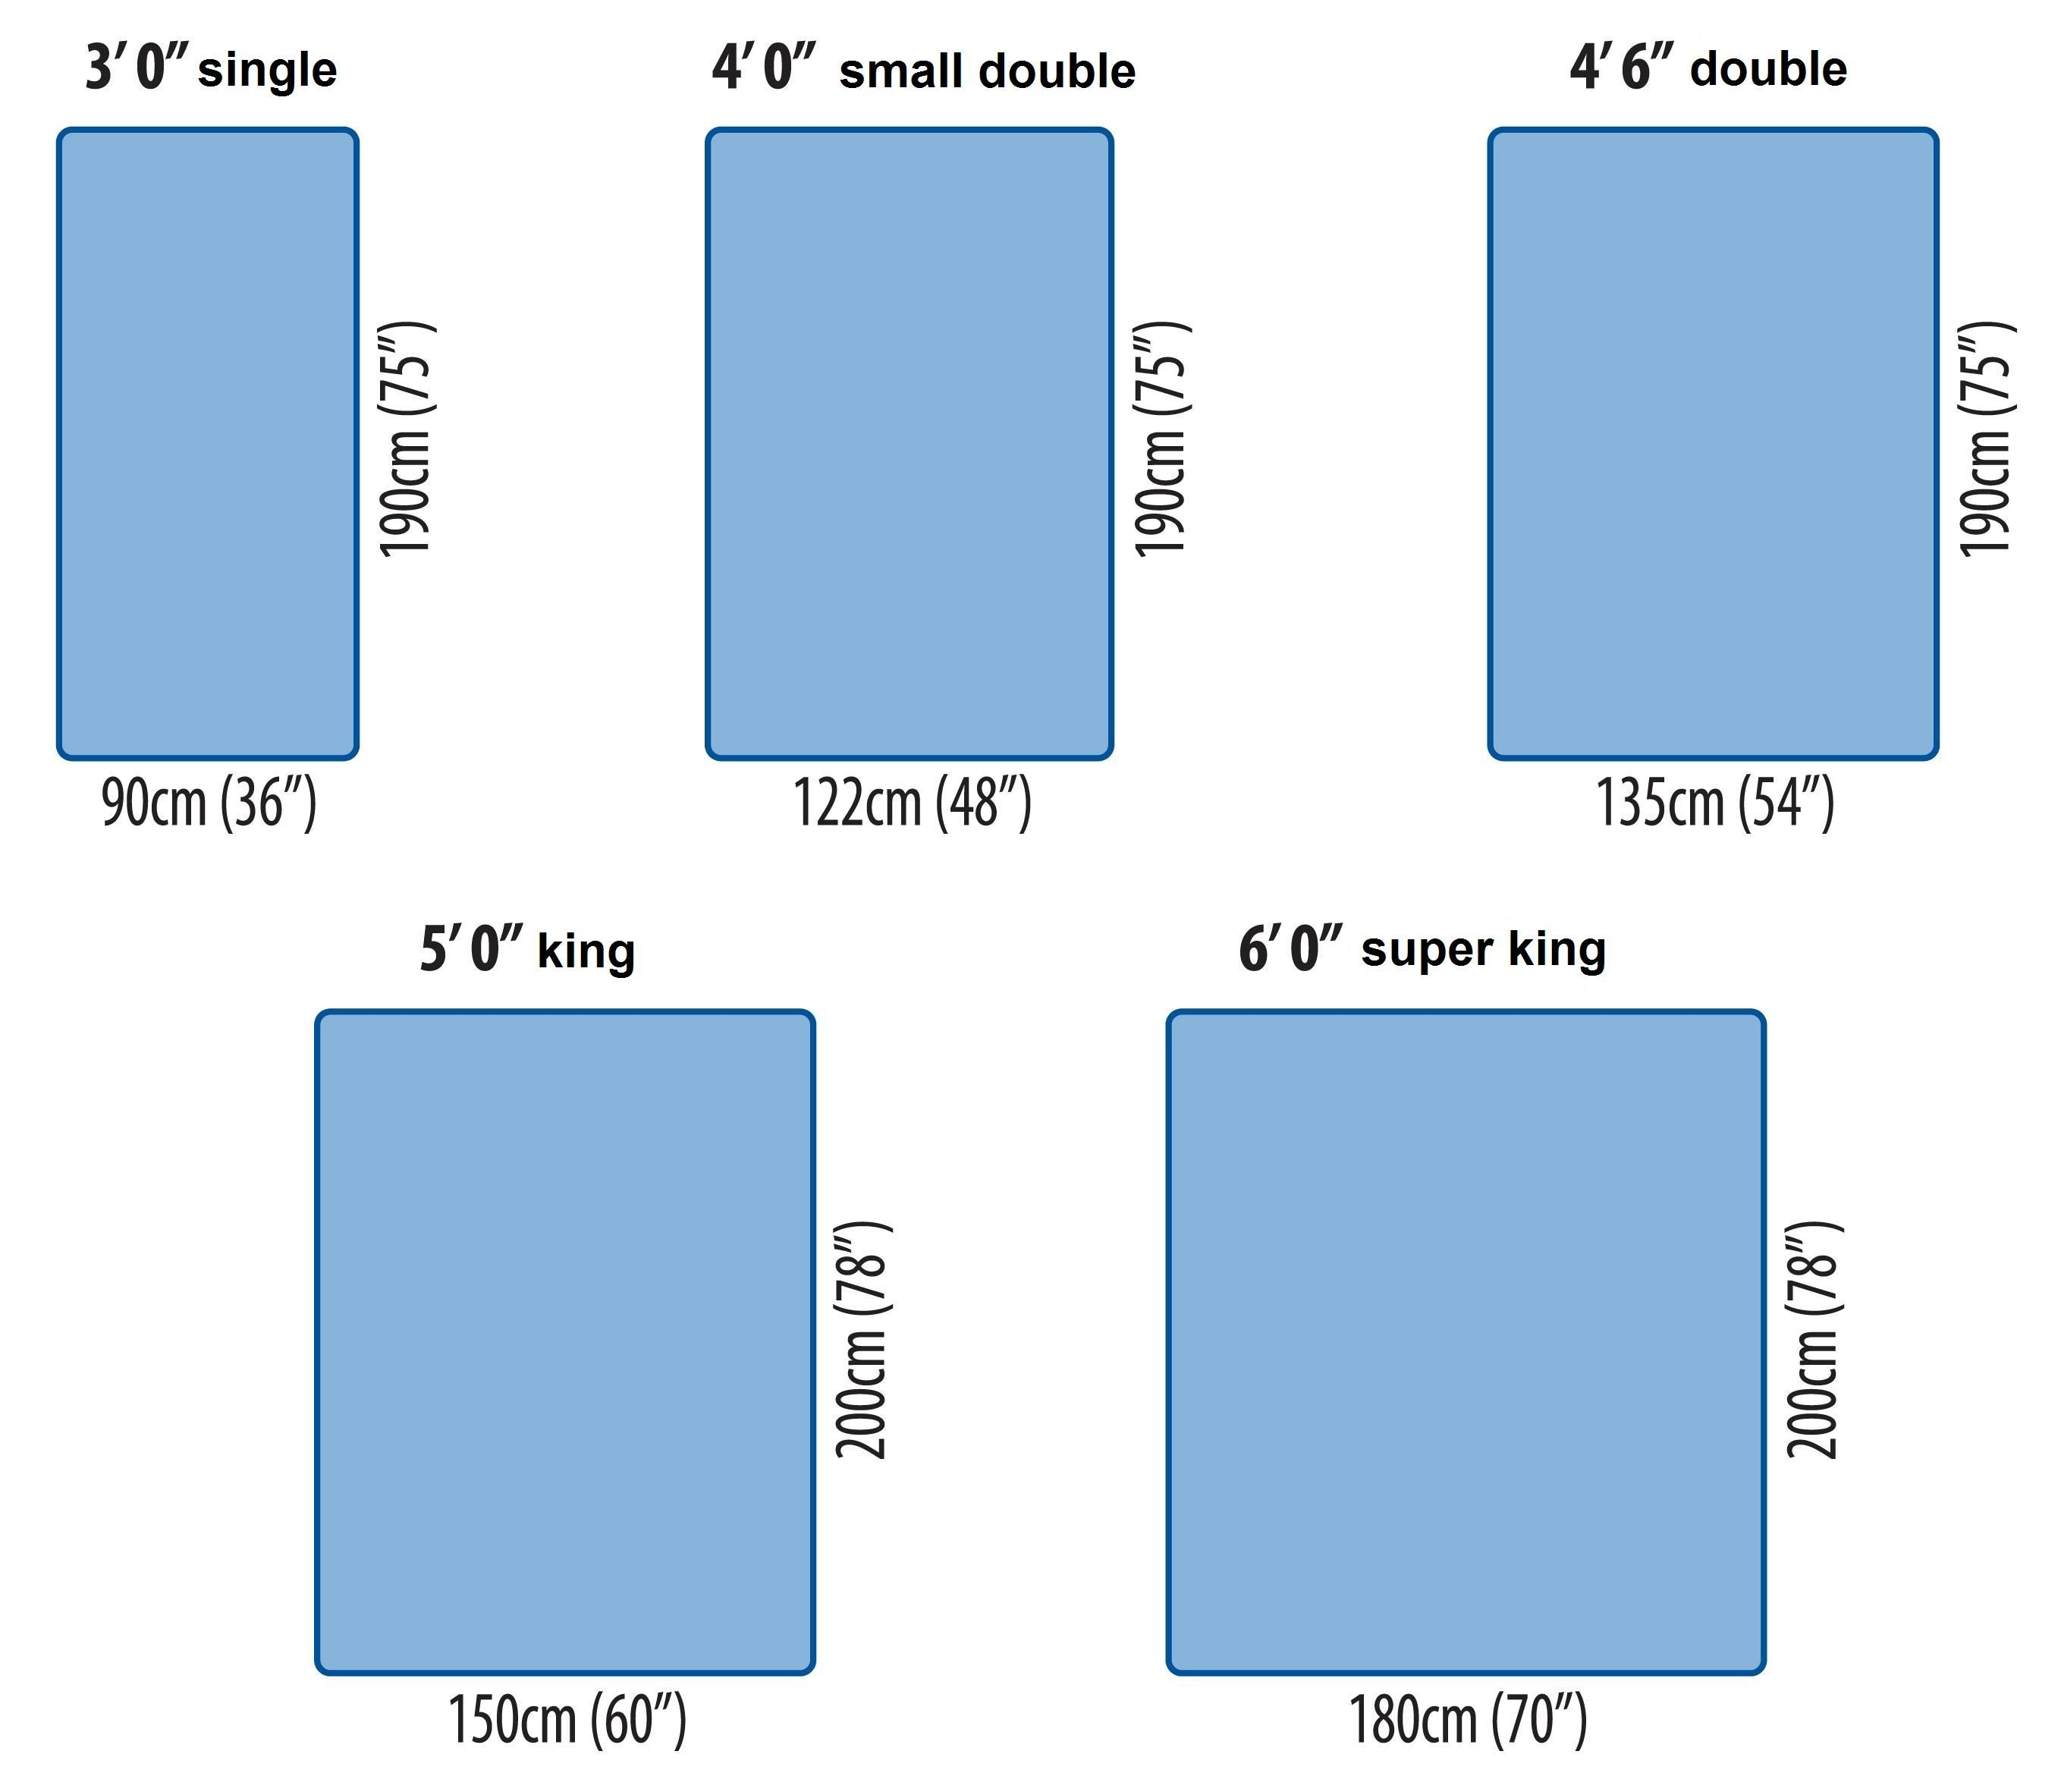 Bed Dimensions.Bed Sizes Are Confusing Interior Design Major King Size